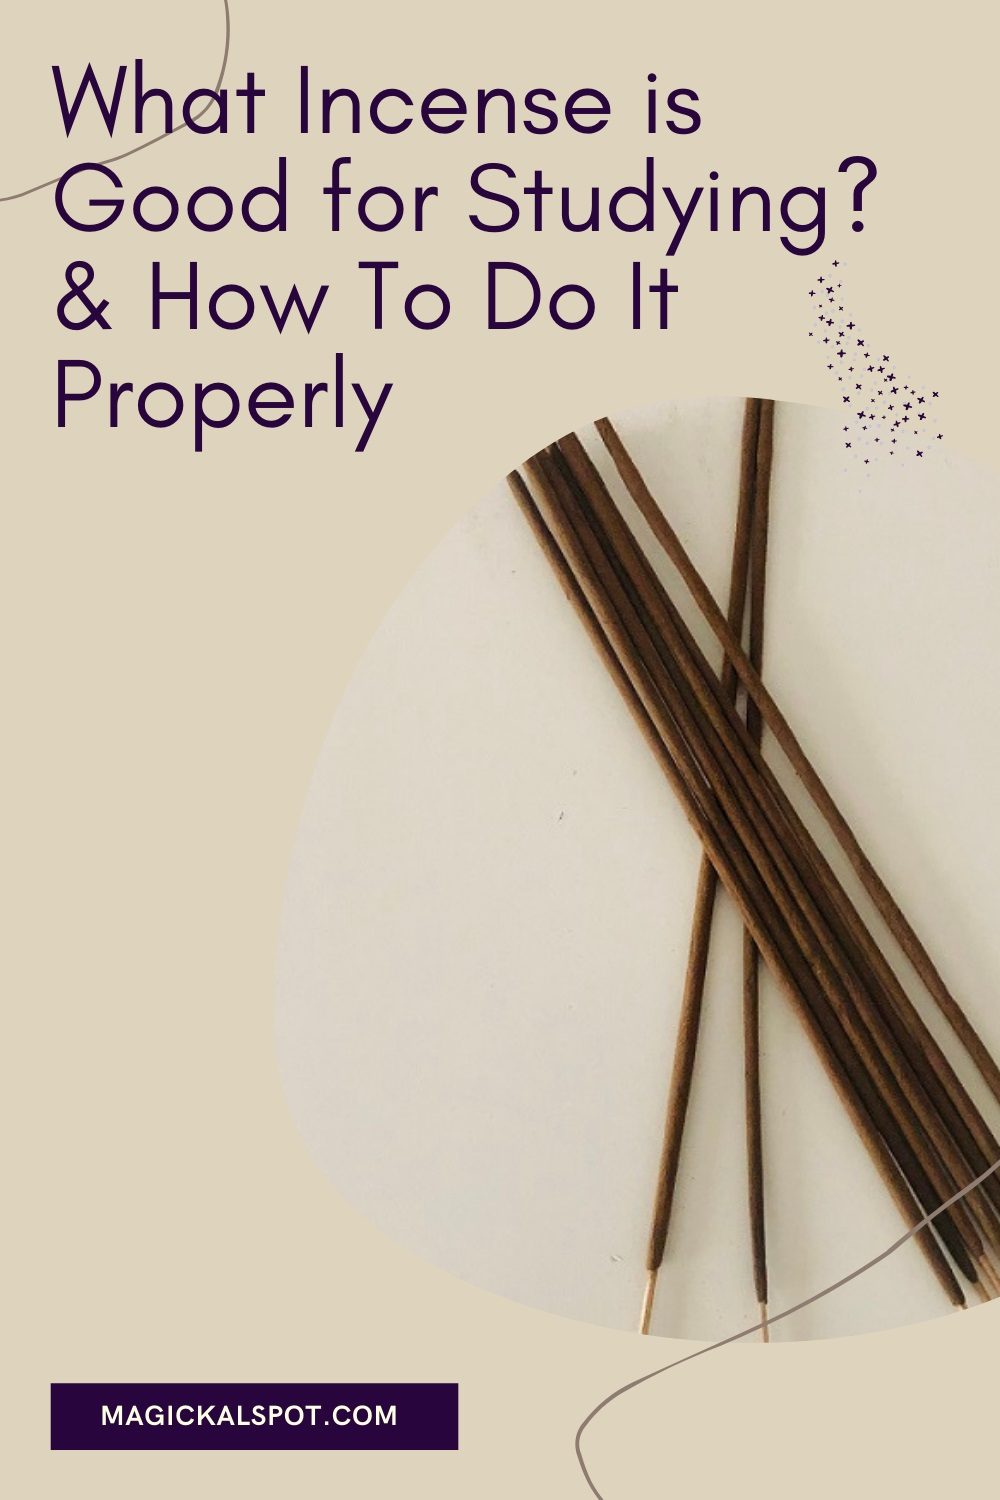 What Incense is Good for Studying by magickal spot